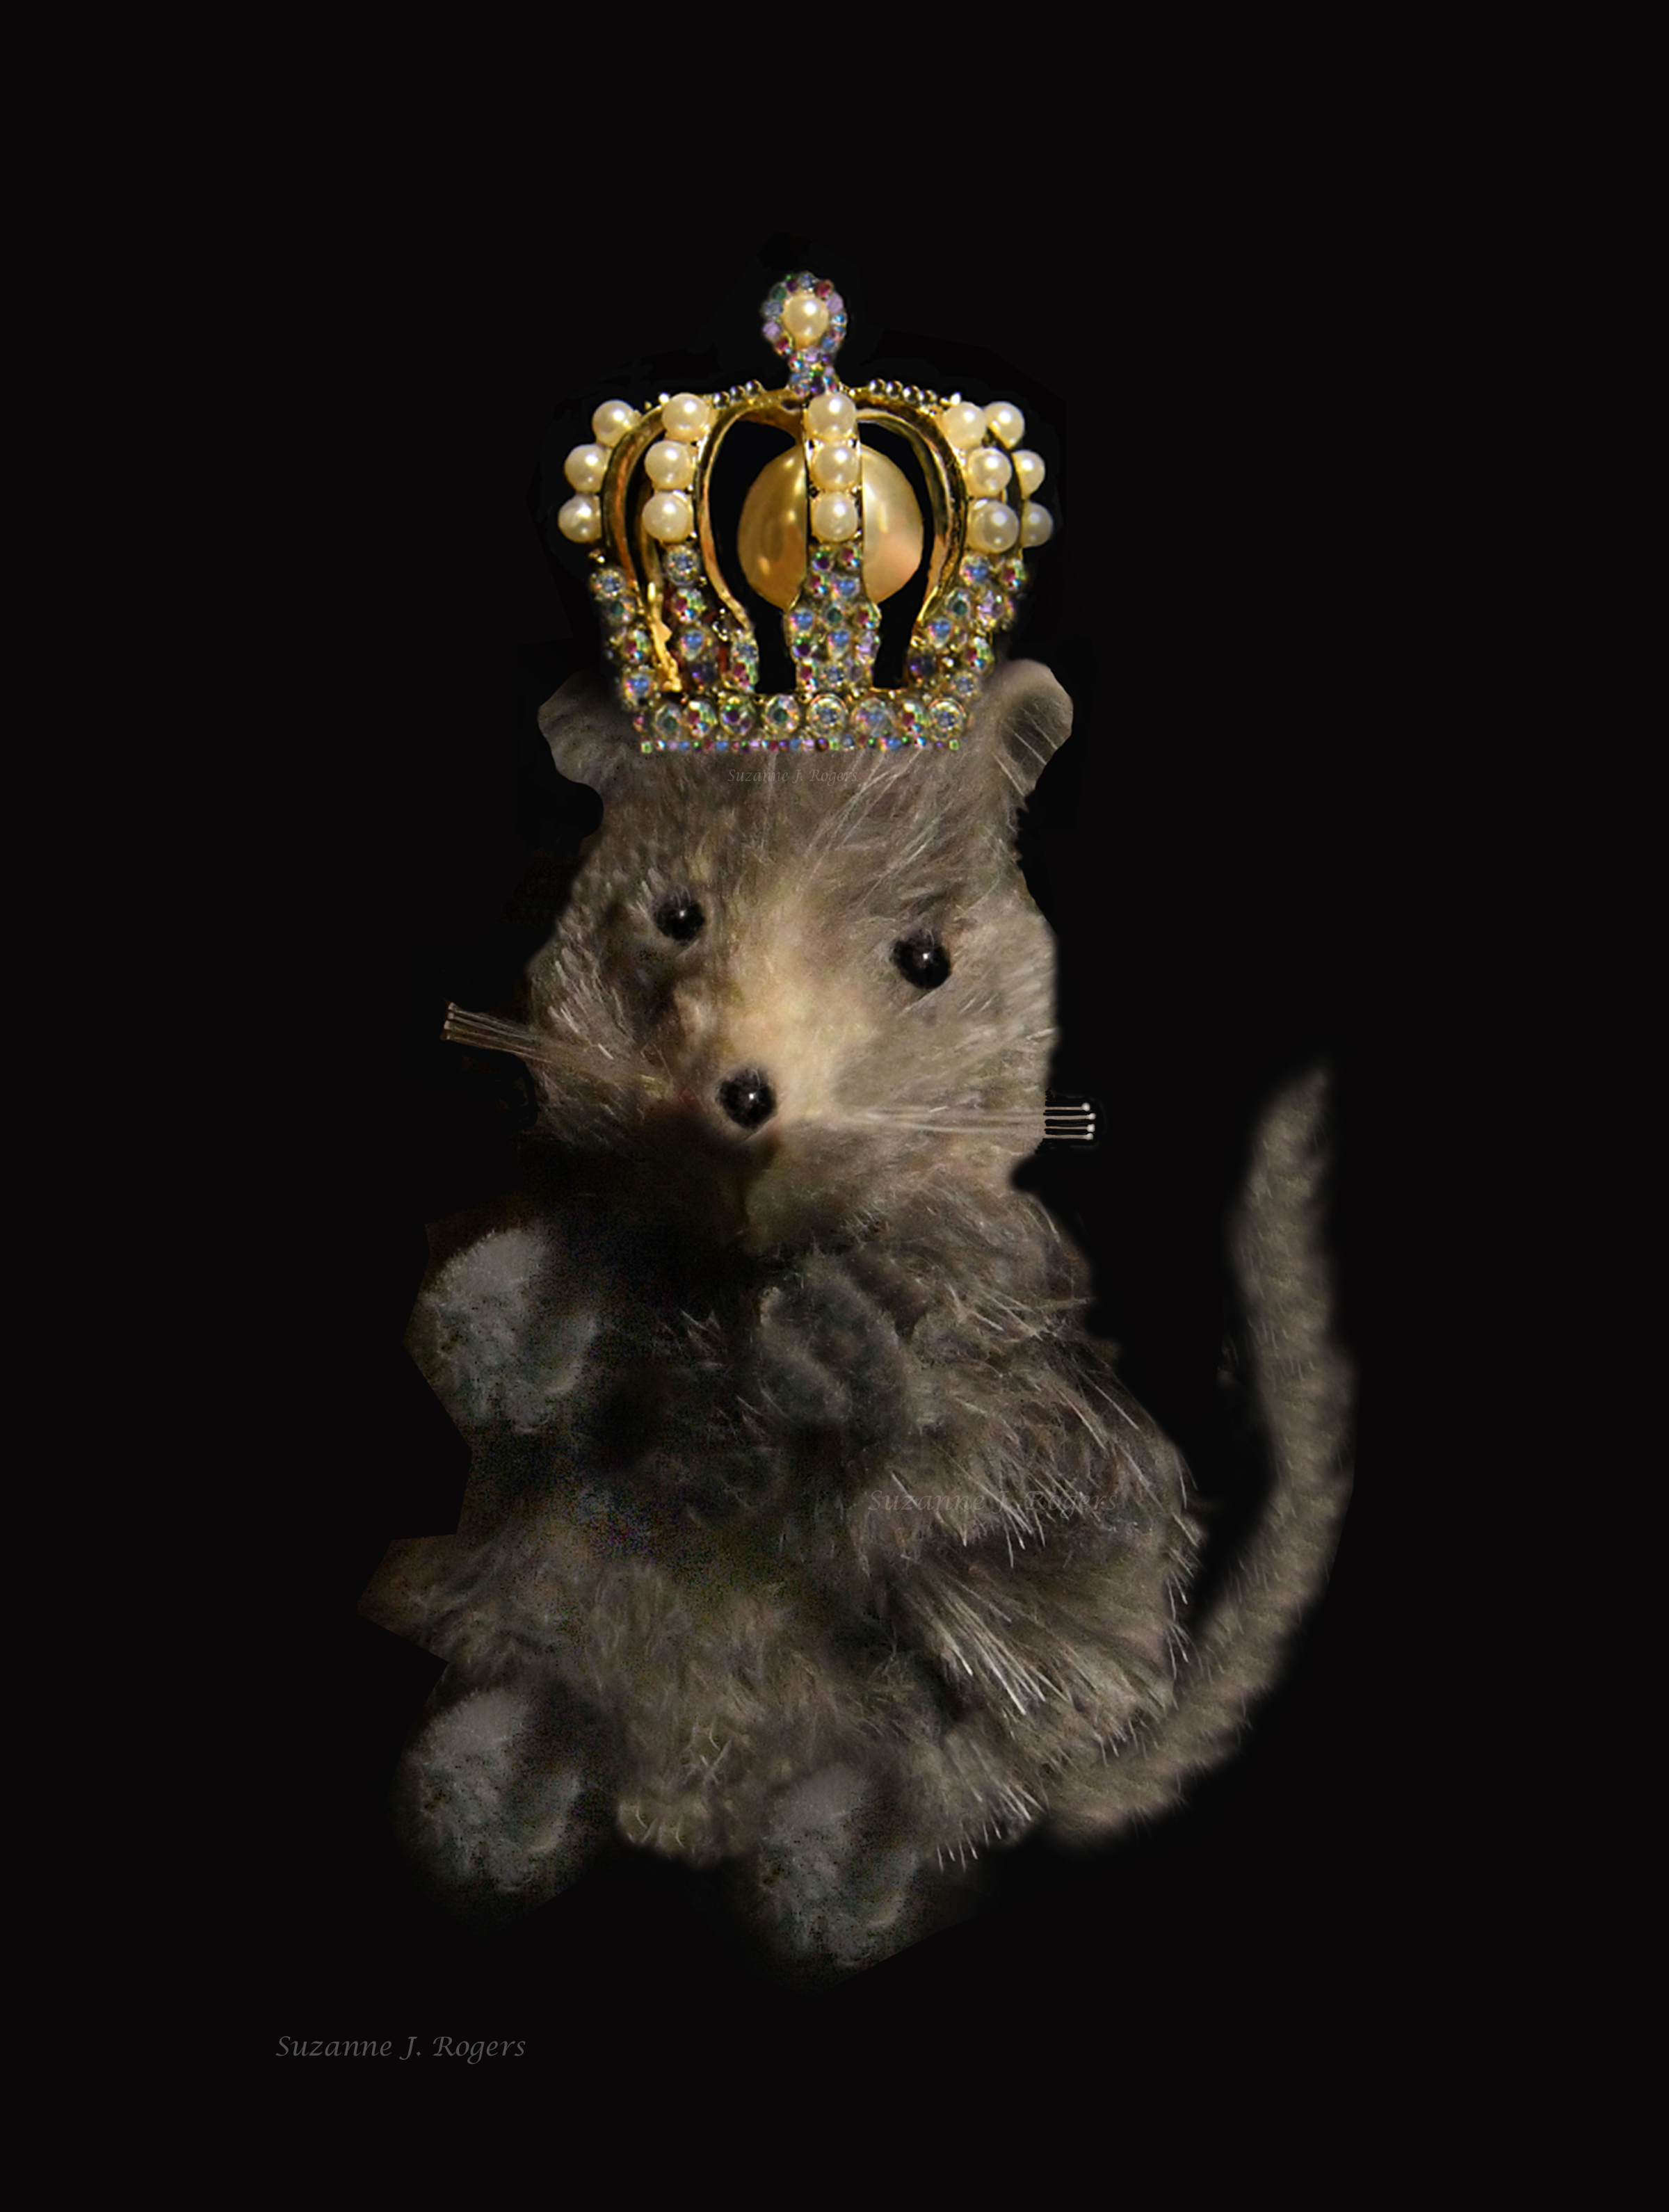 use this The mouse King_